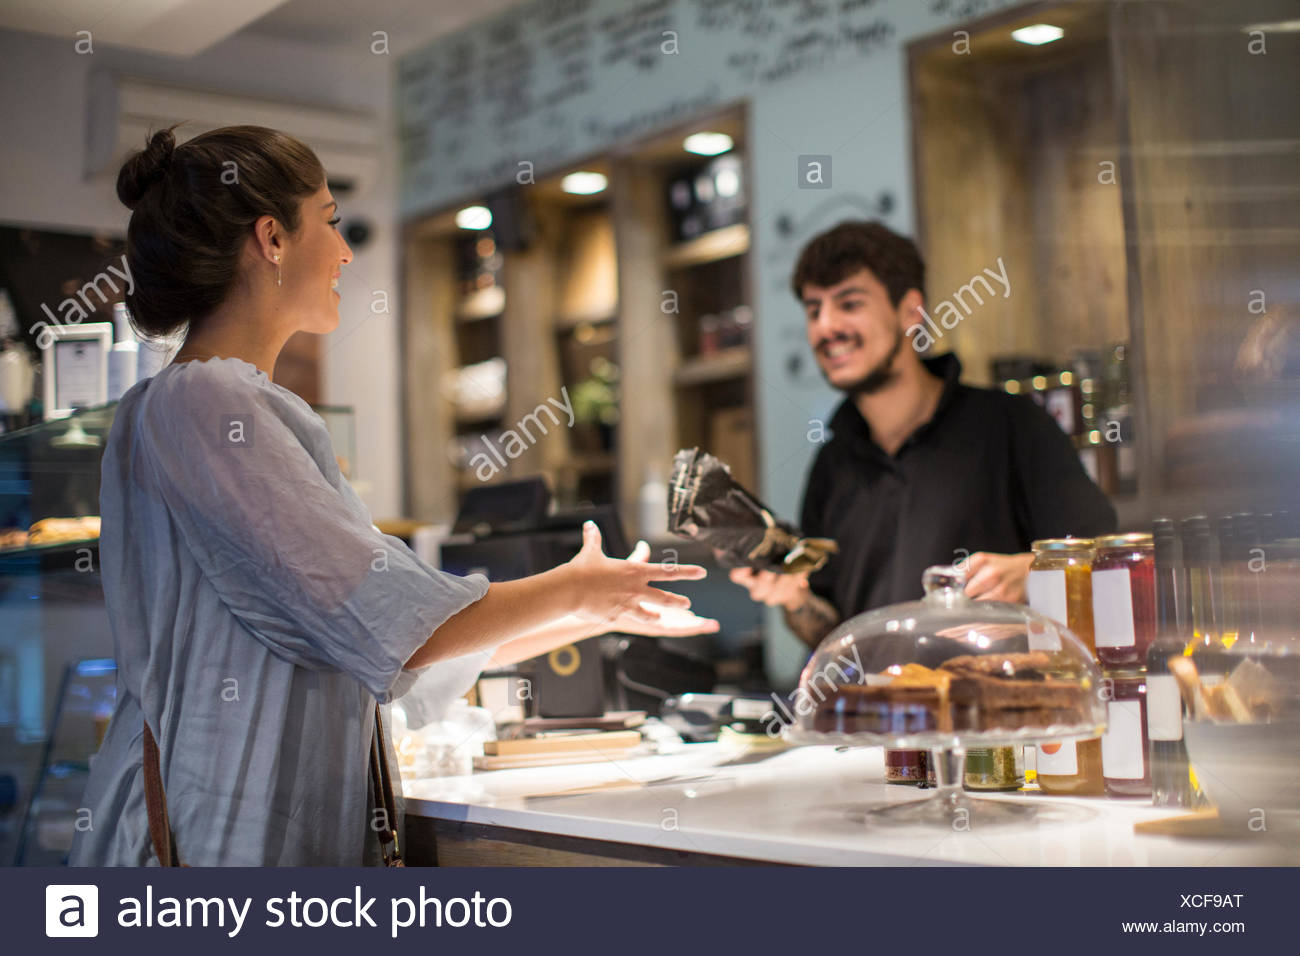 Barista handing baguette to female customer at cafe counter - Stock Image